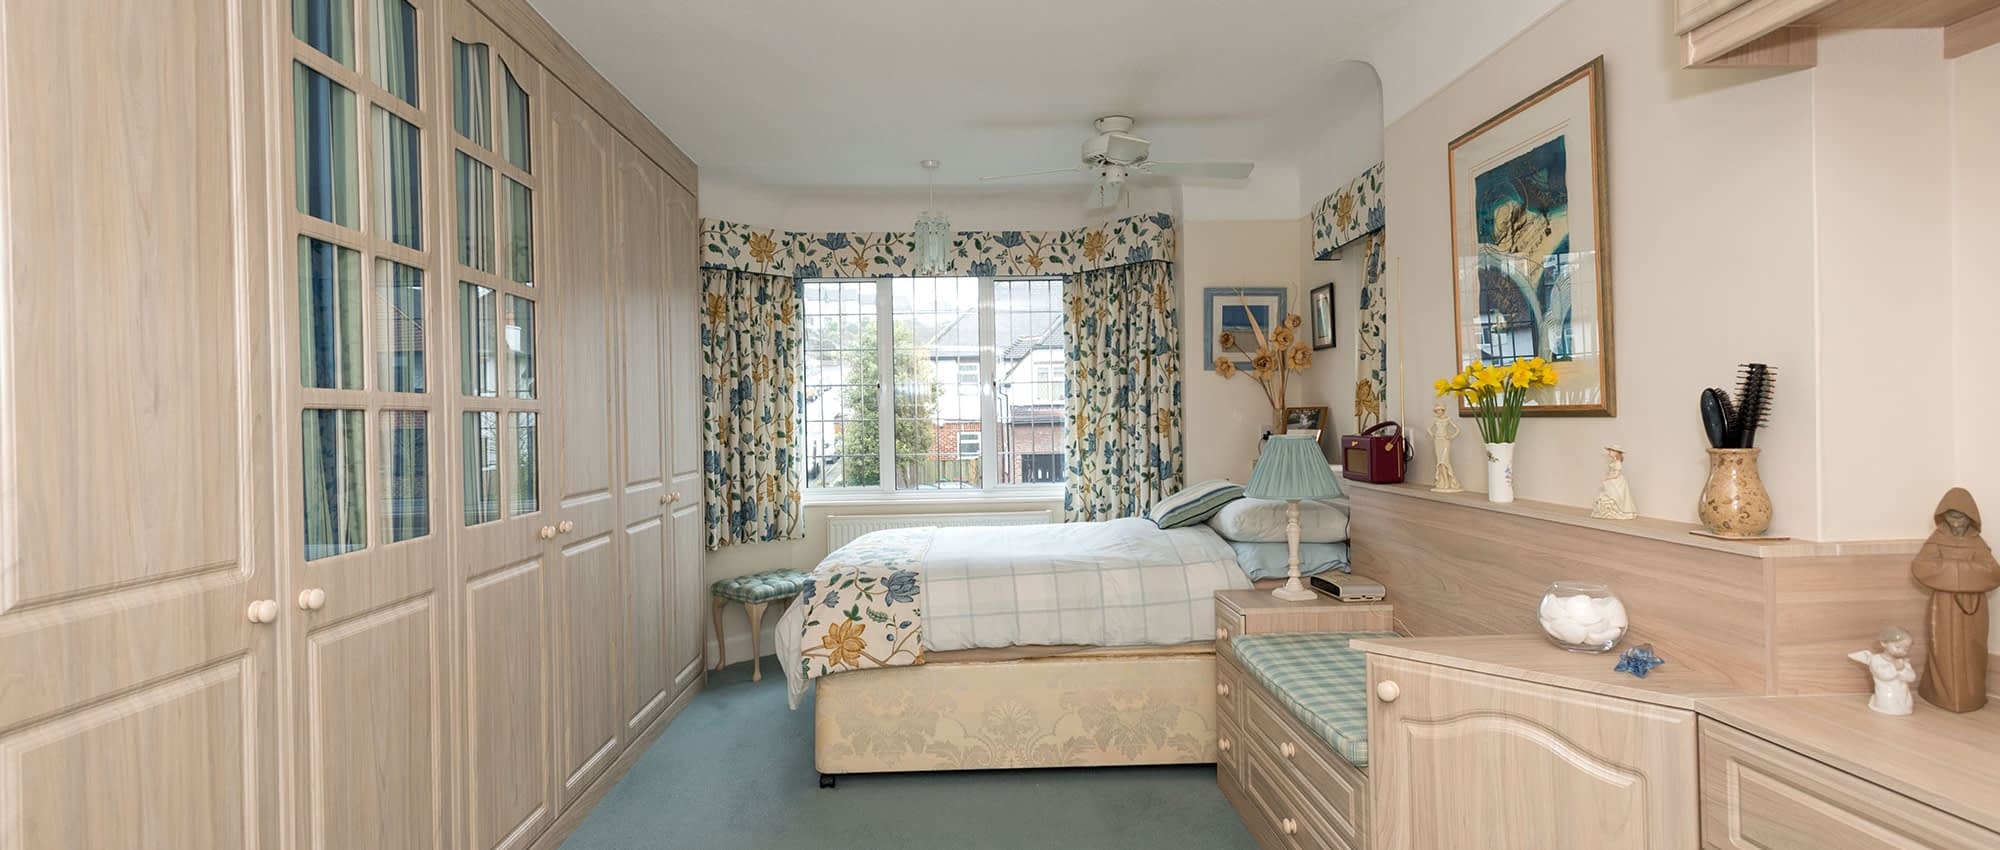 bespoke fitted bedroom athena